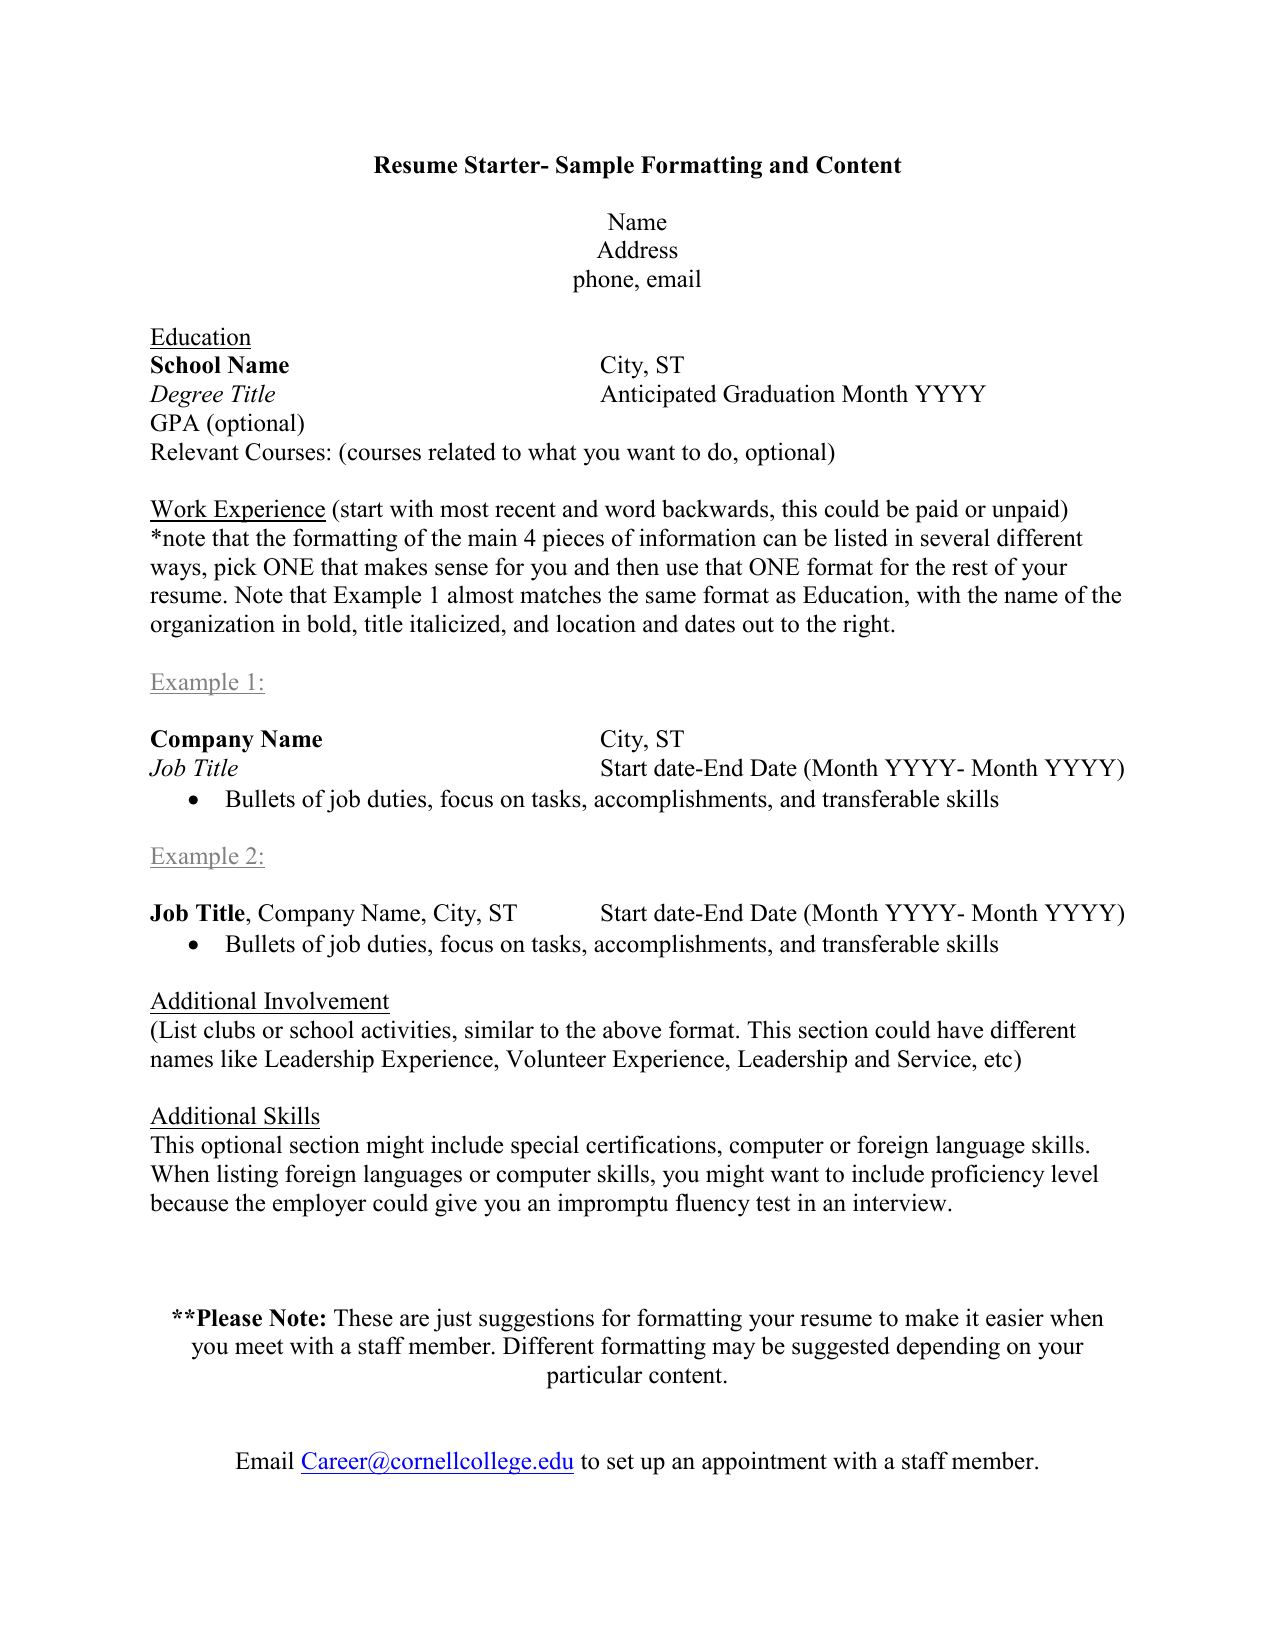 Resume Starter Sample Formatting And Content School Name Name